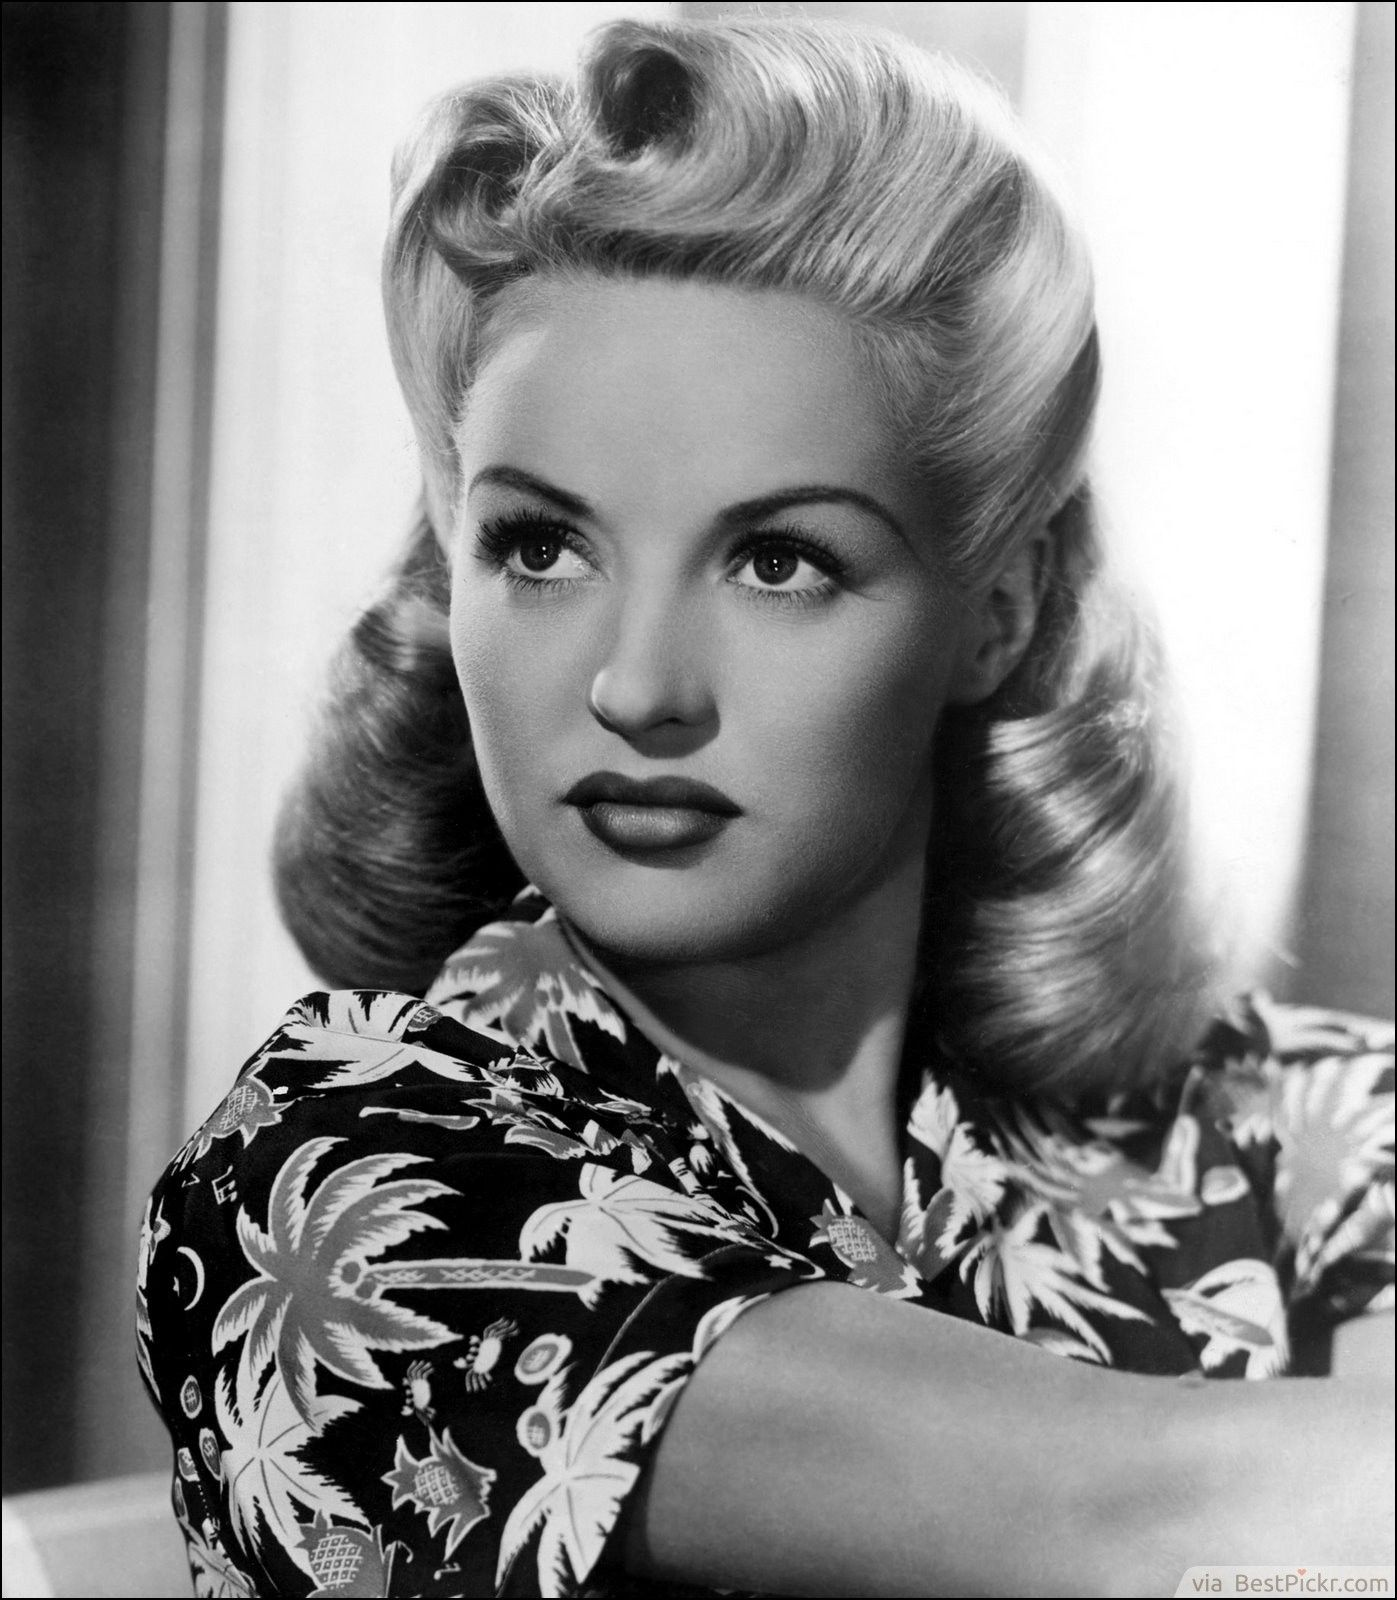 1950s Ladies Hairstyles Now Is The Time For You To Know The Truth